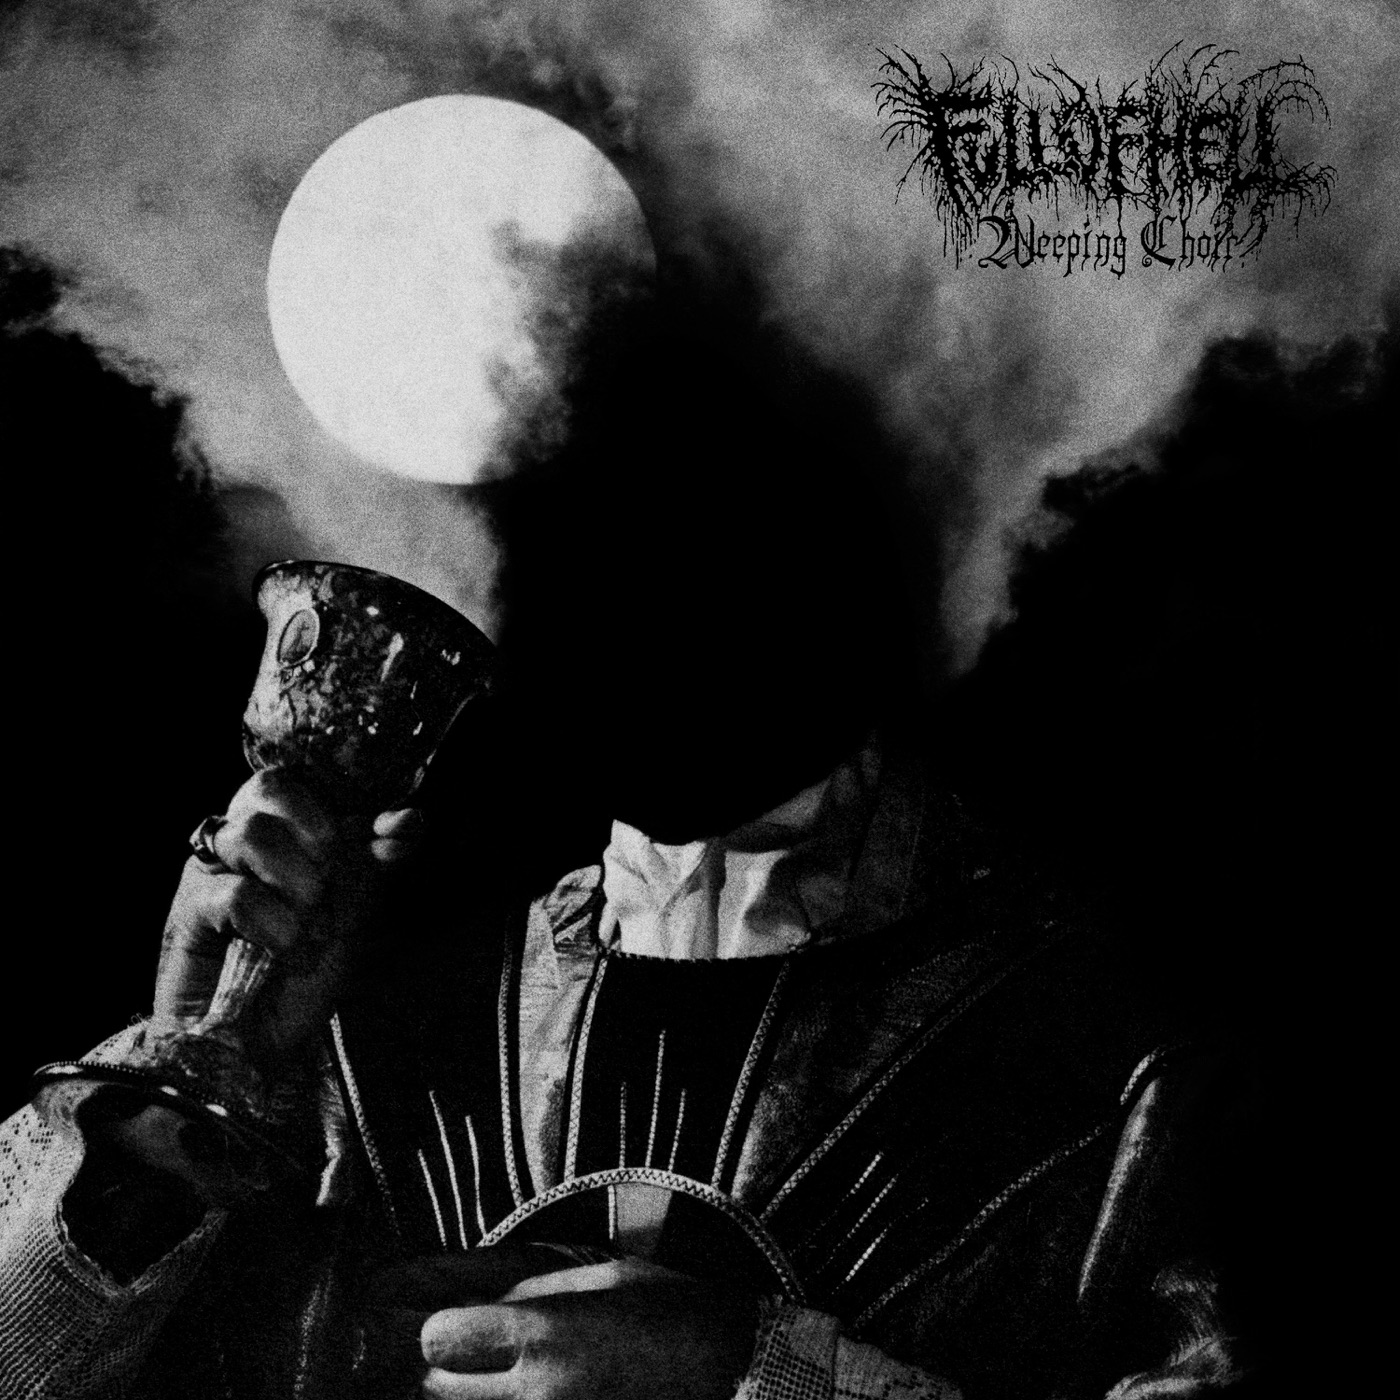 Full of Hell - Burning Myrrh [single] (2019)